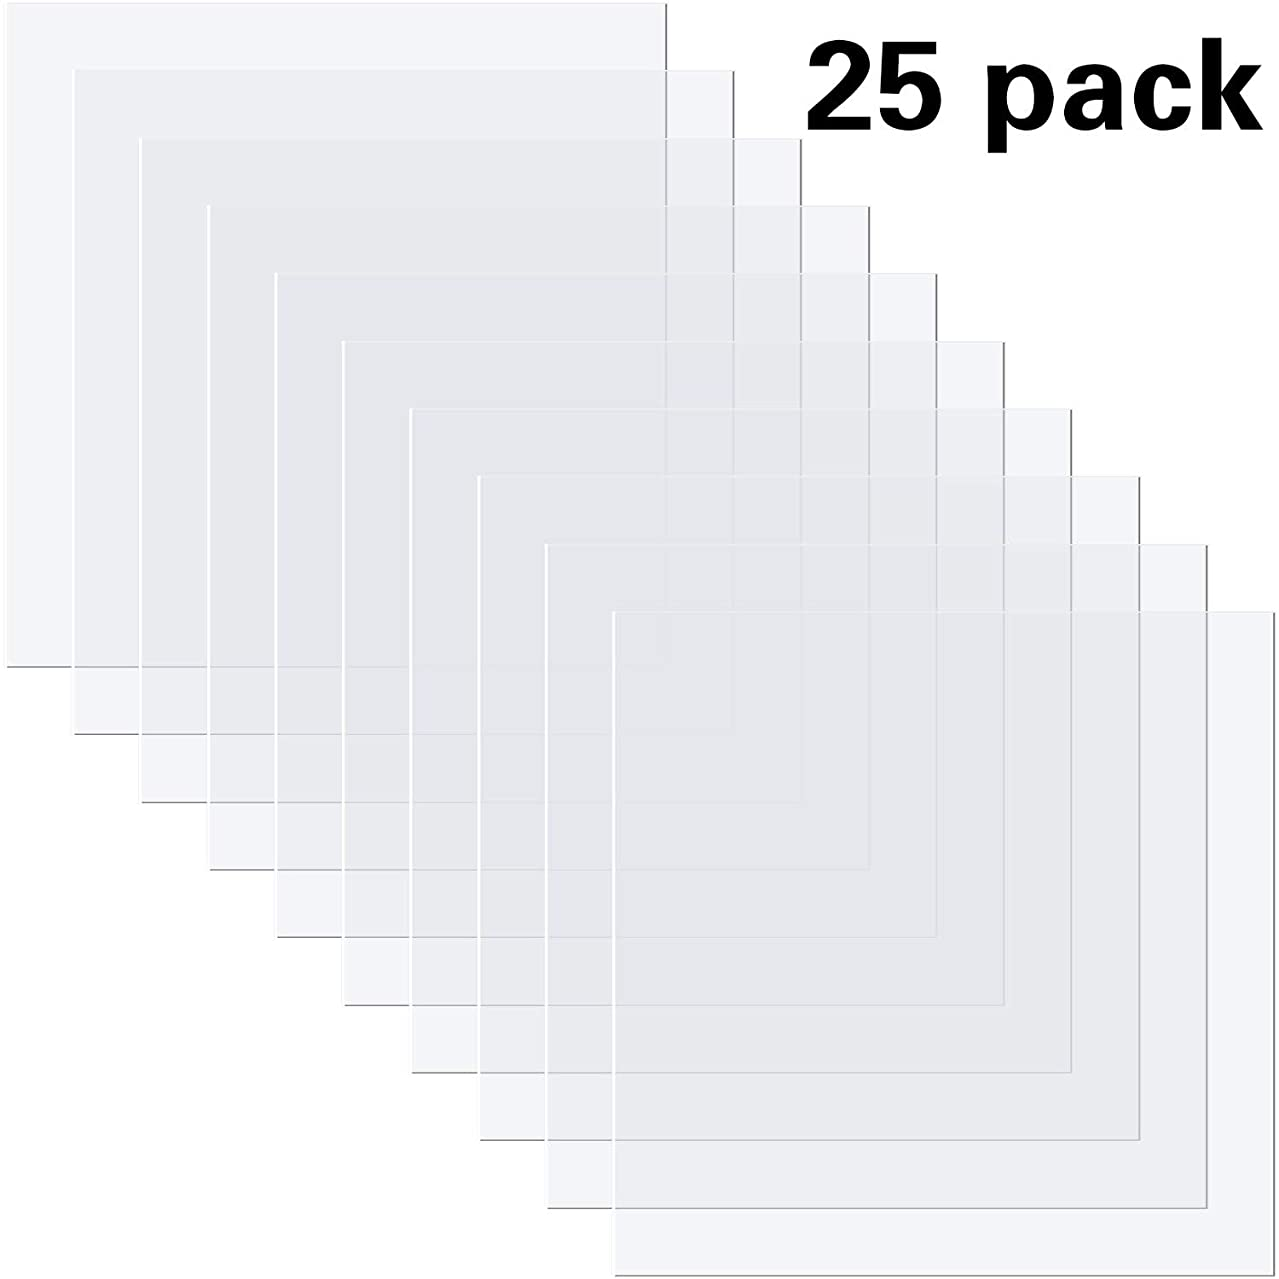 25 Pieces 4 Mil Blank Stencil Material Blank Stencil Sheets, 12 x 12 Inches